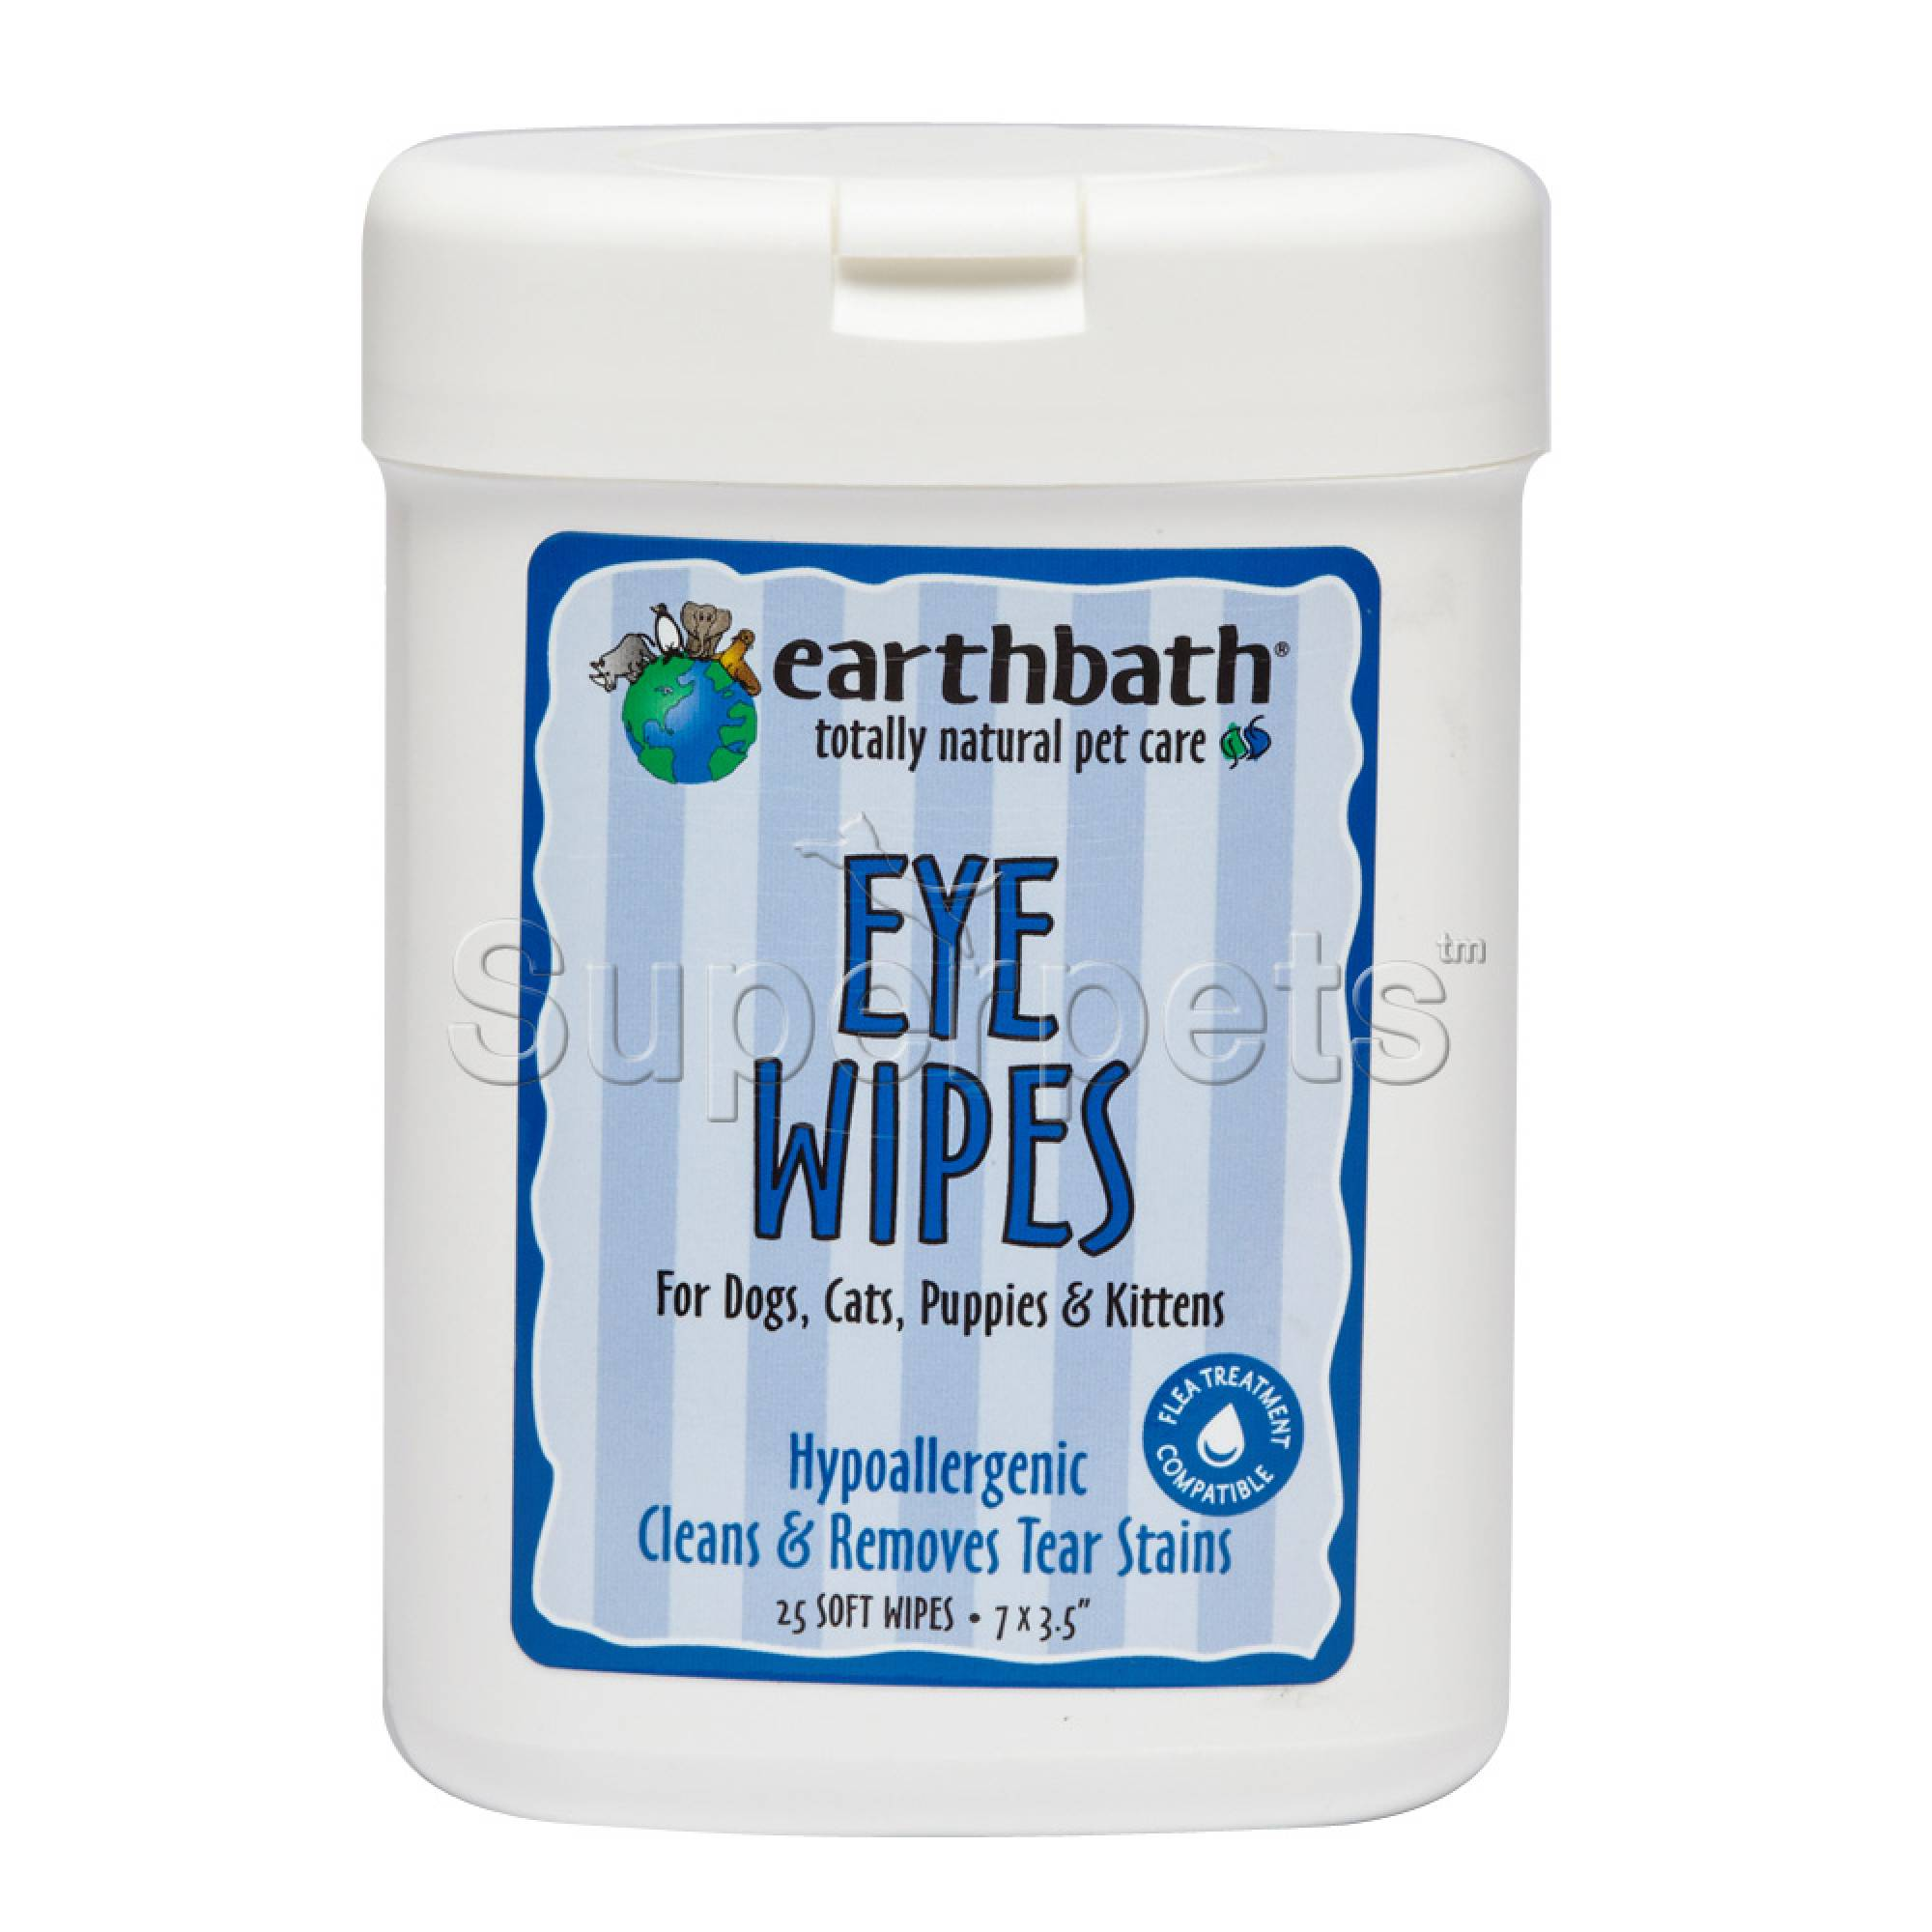 Earthbath EB040 Eye Wipes for Dogs, Cats & Kittens x25pcs